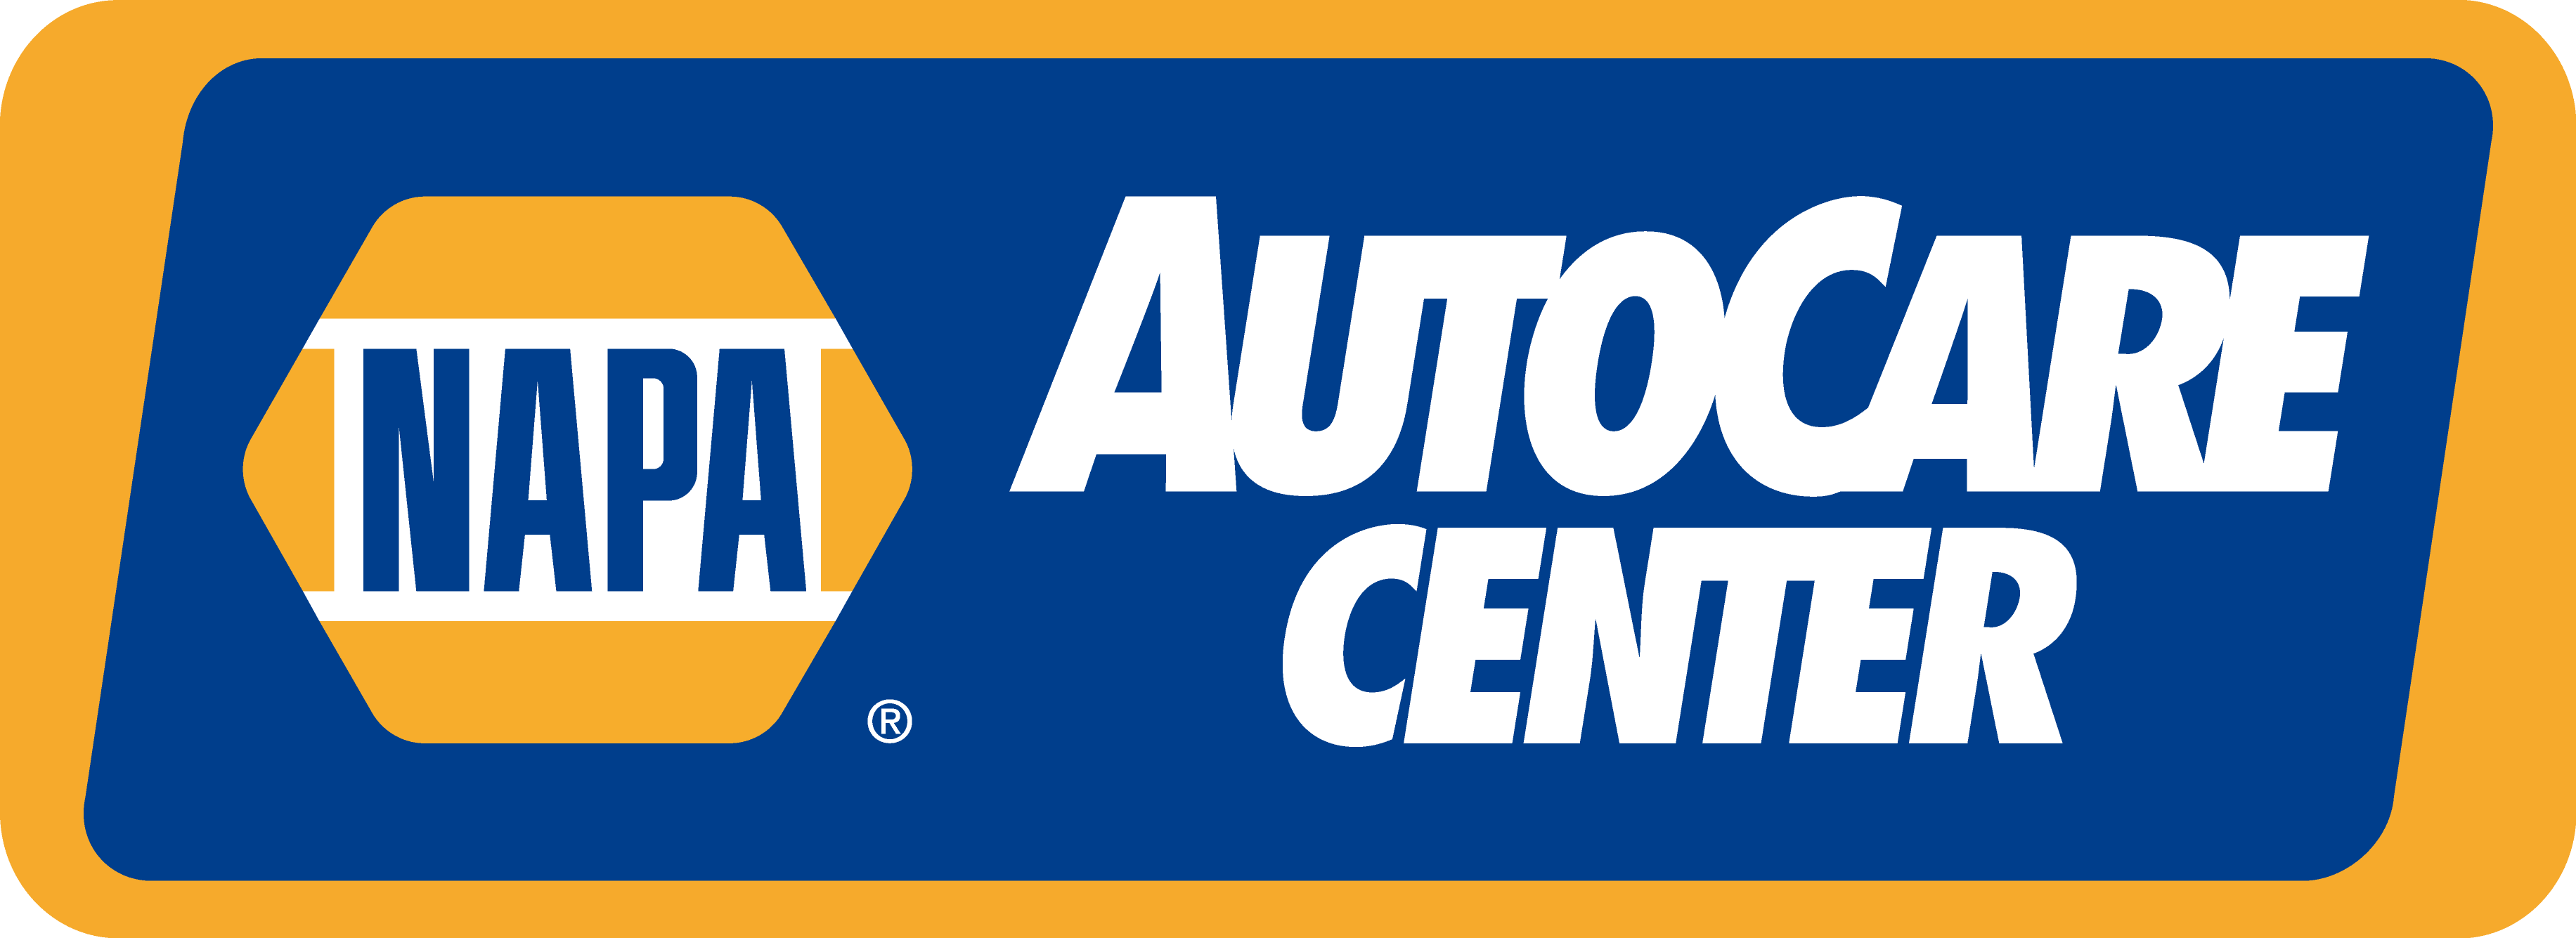 NAPA Auto Care Center, Affordable Auto And Rv Repair, Richland, WA, 99352